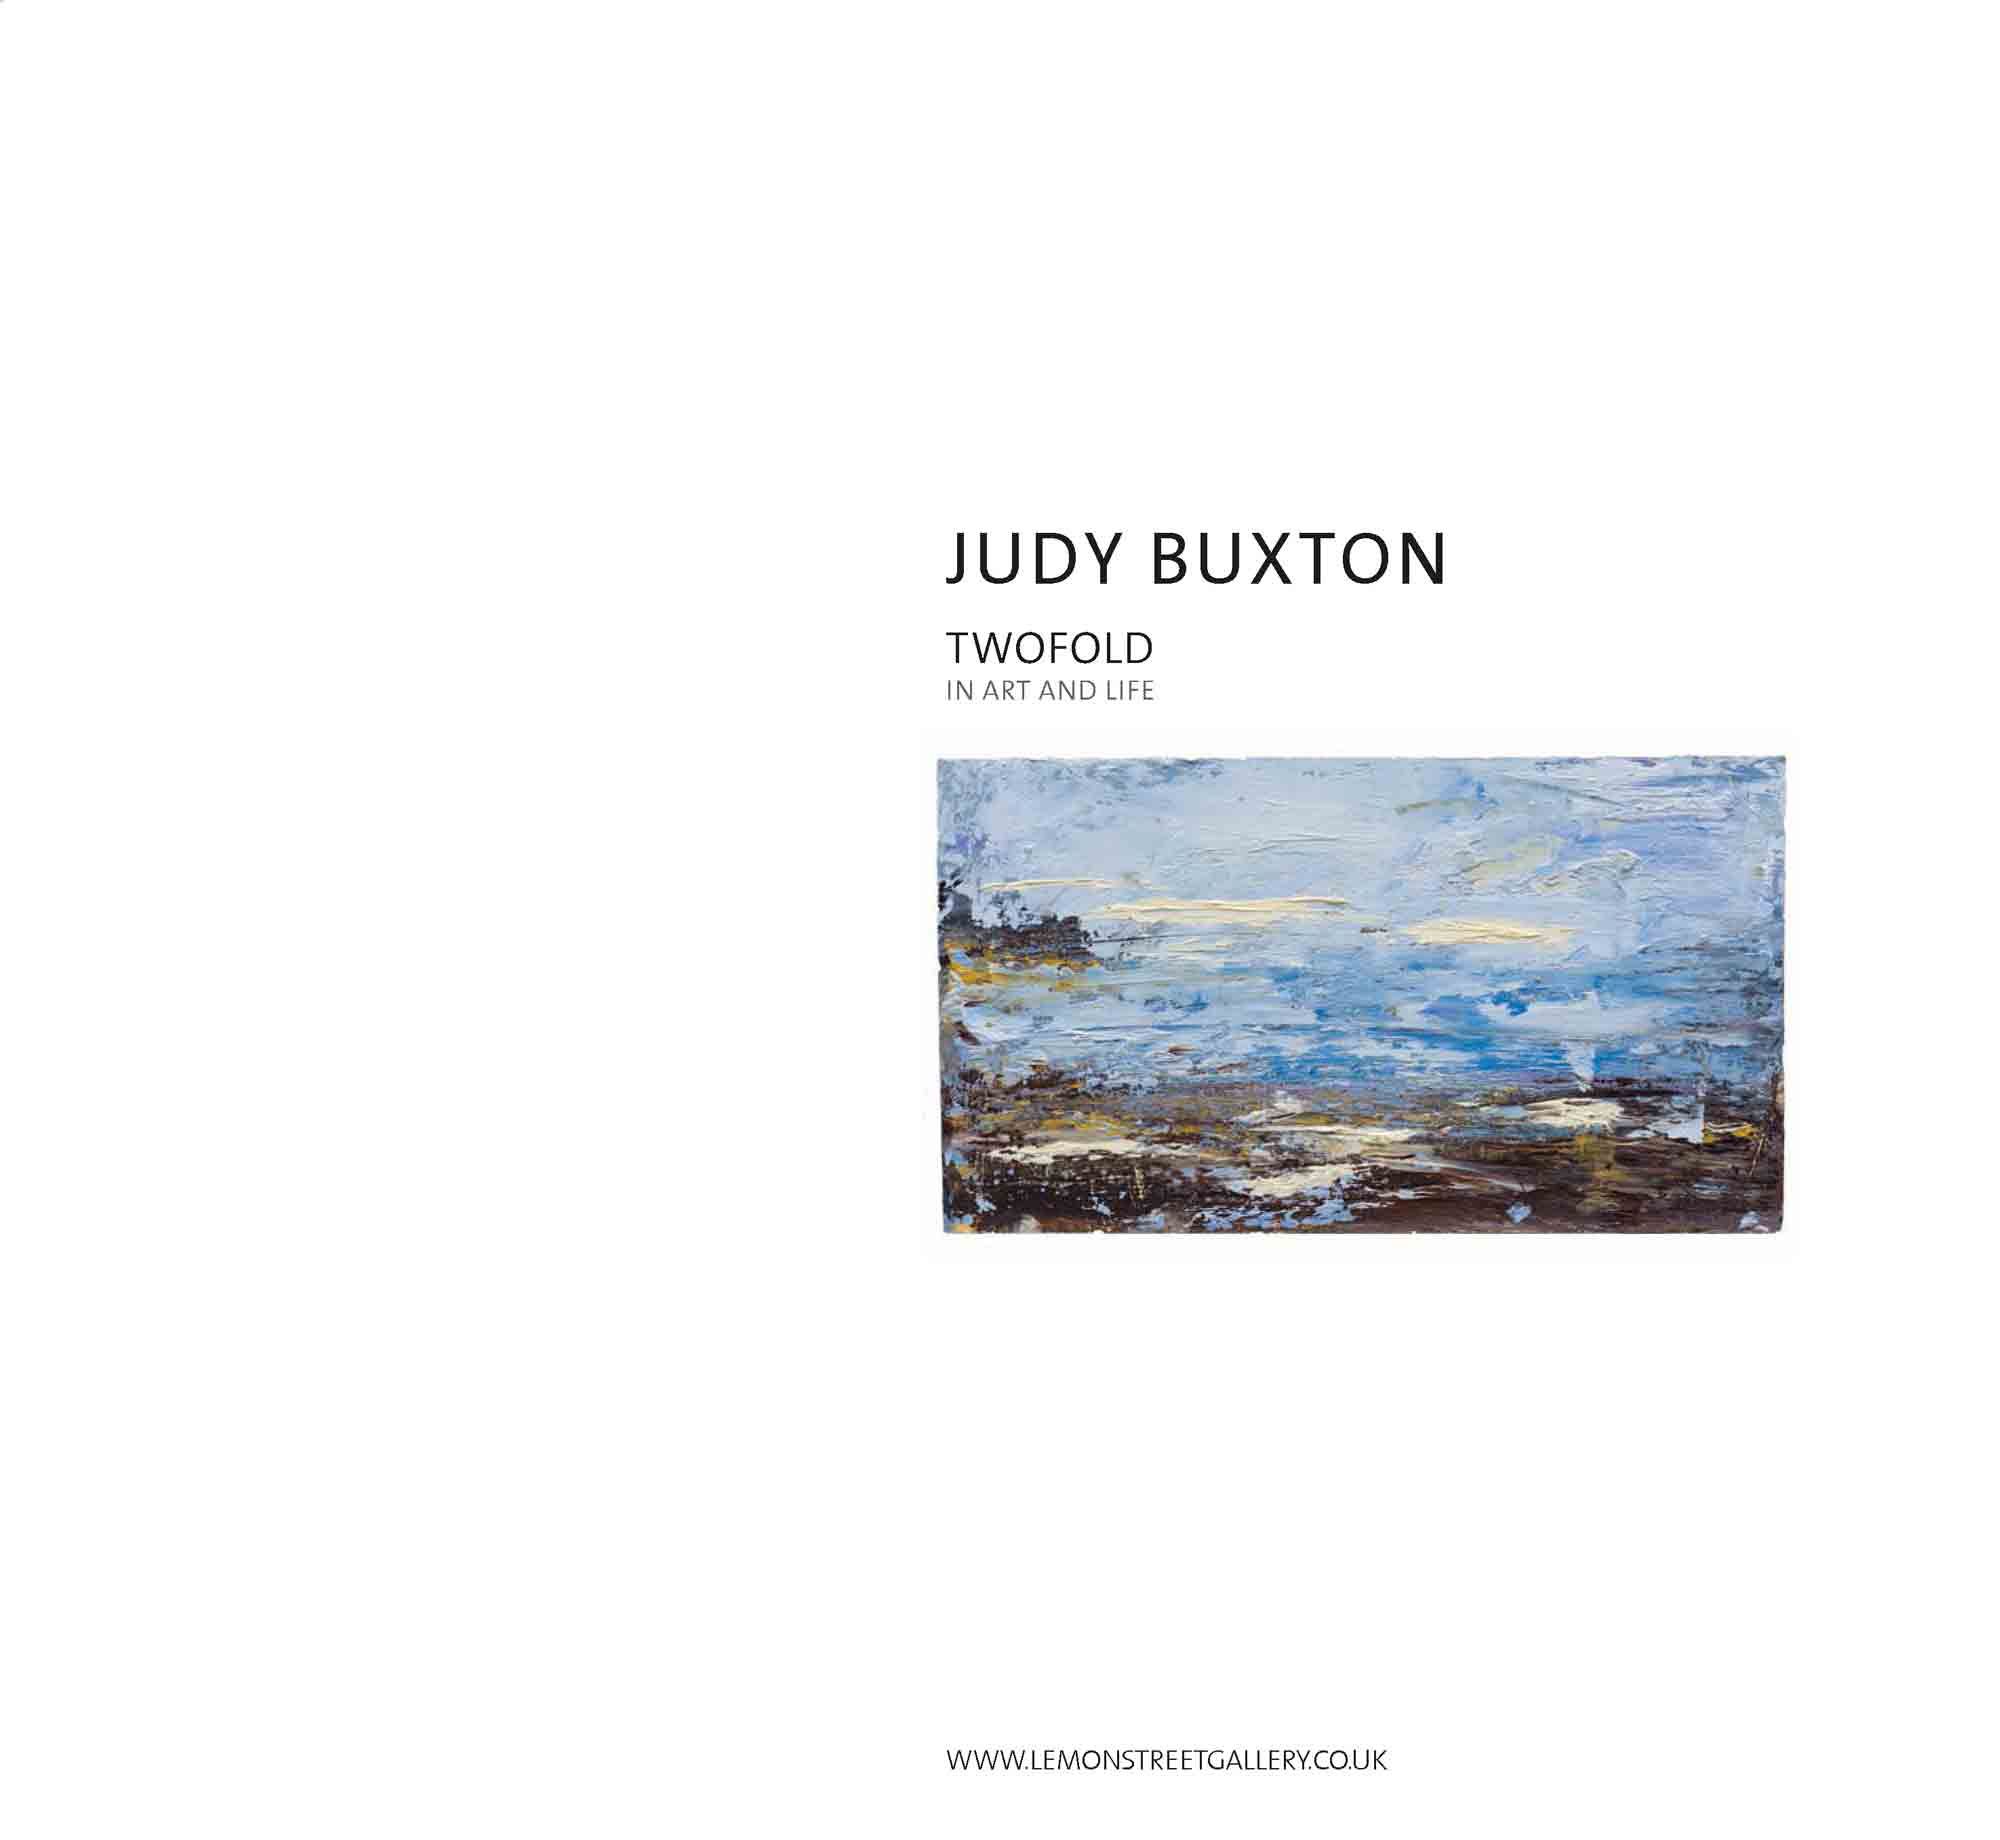 Judy Buxton publication front cover